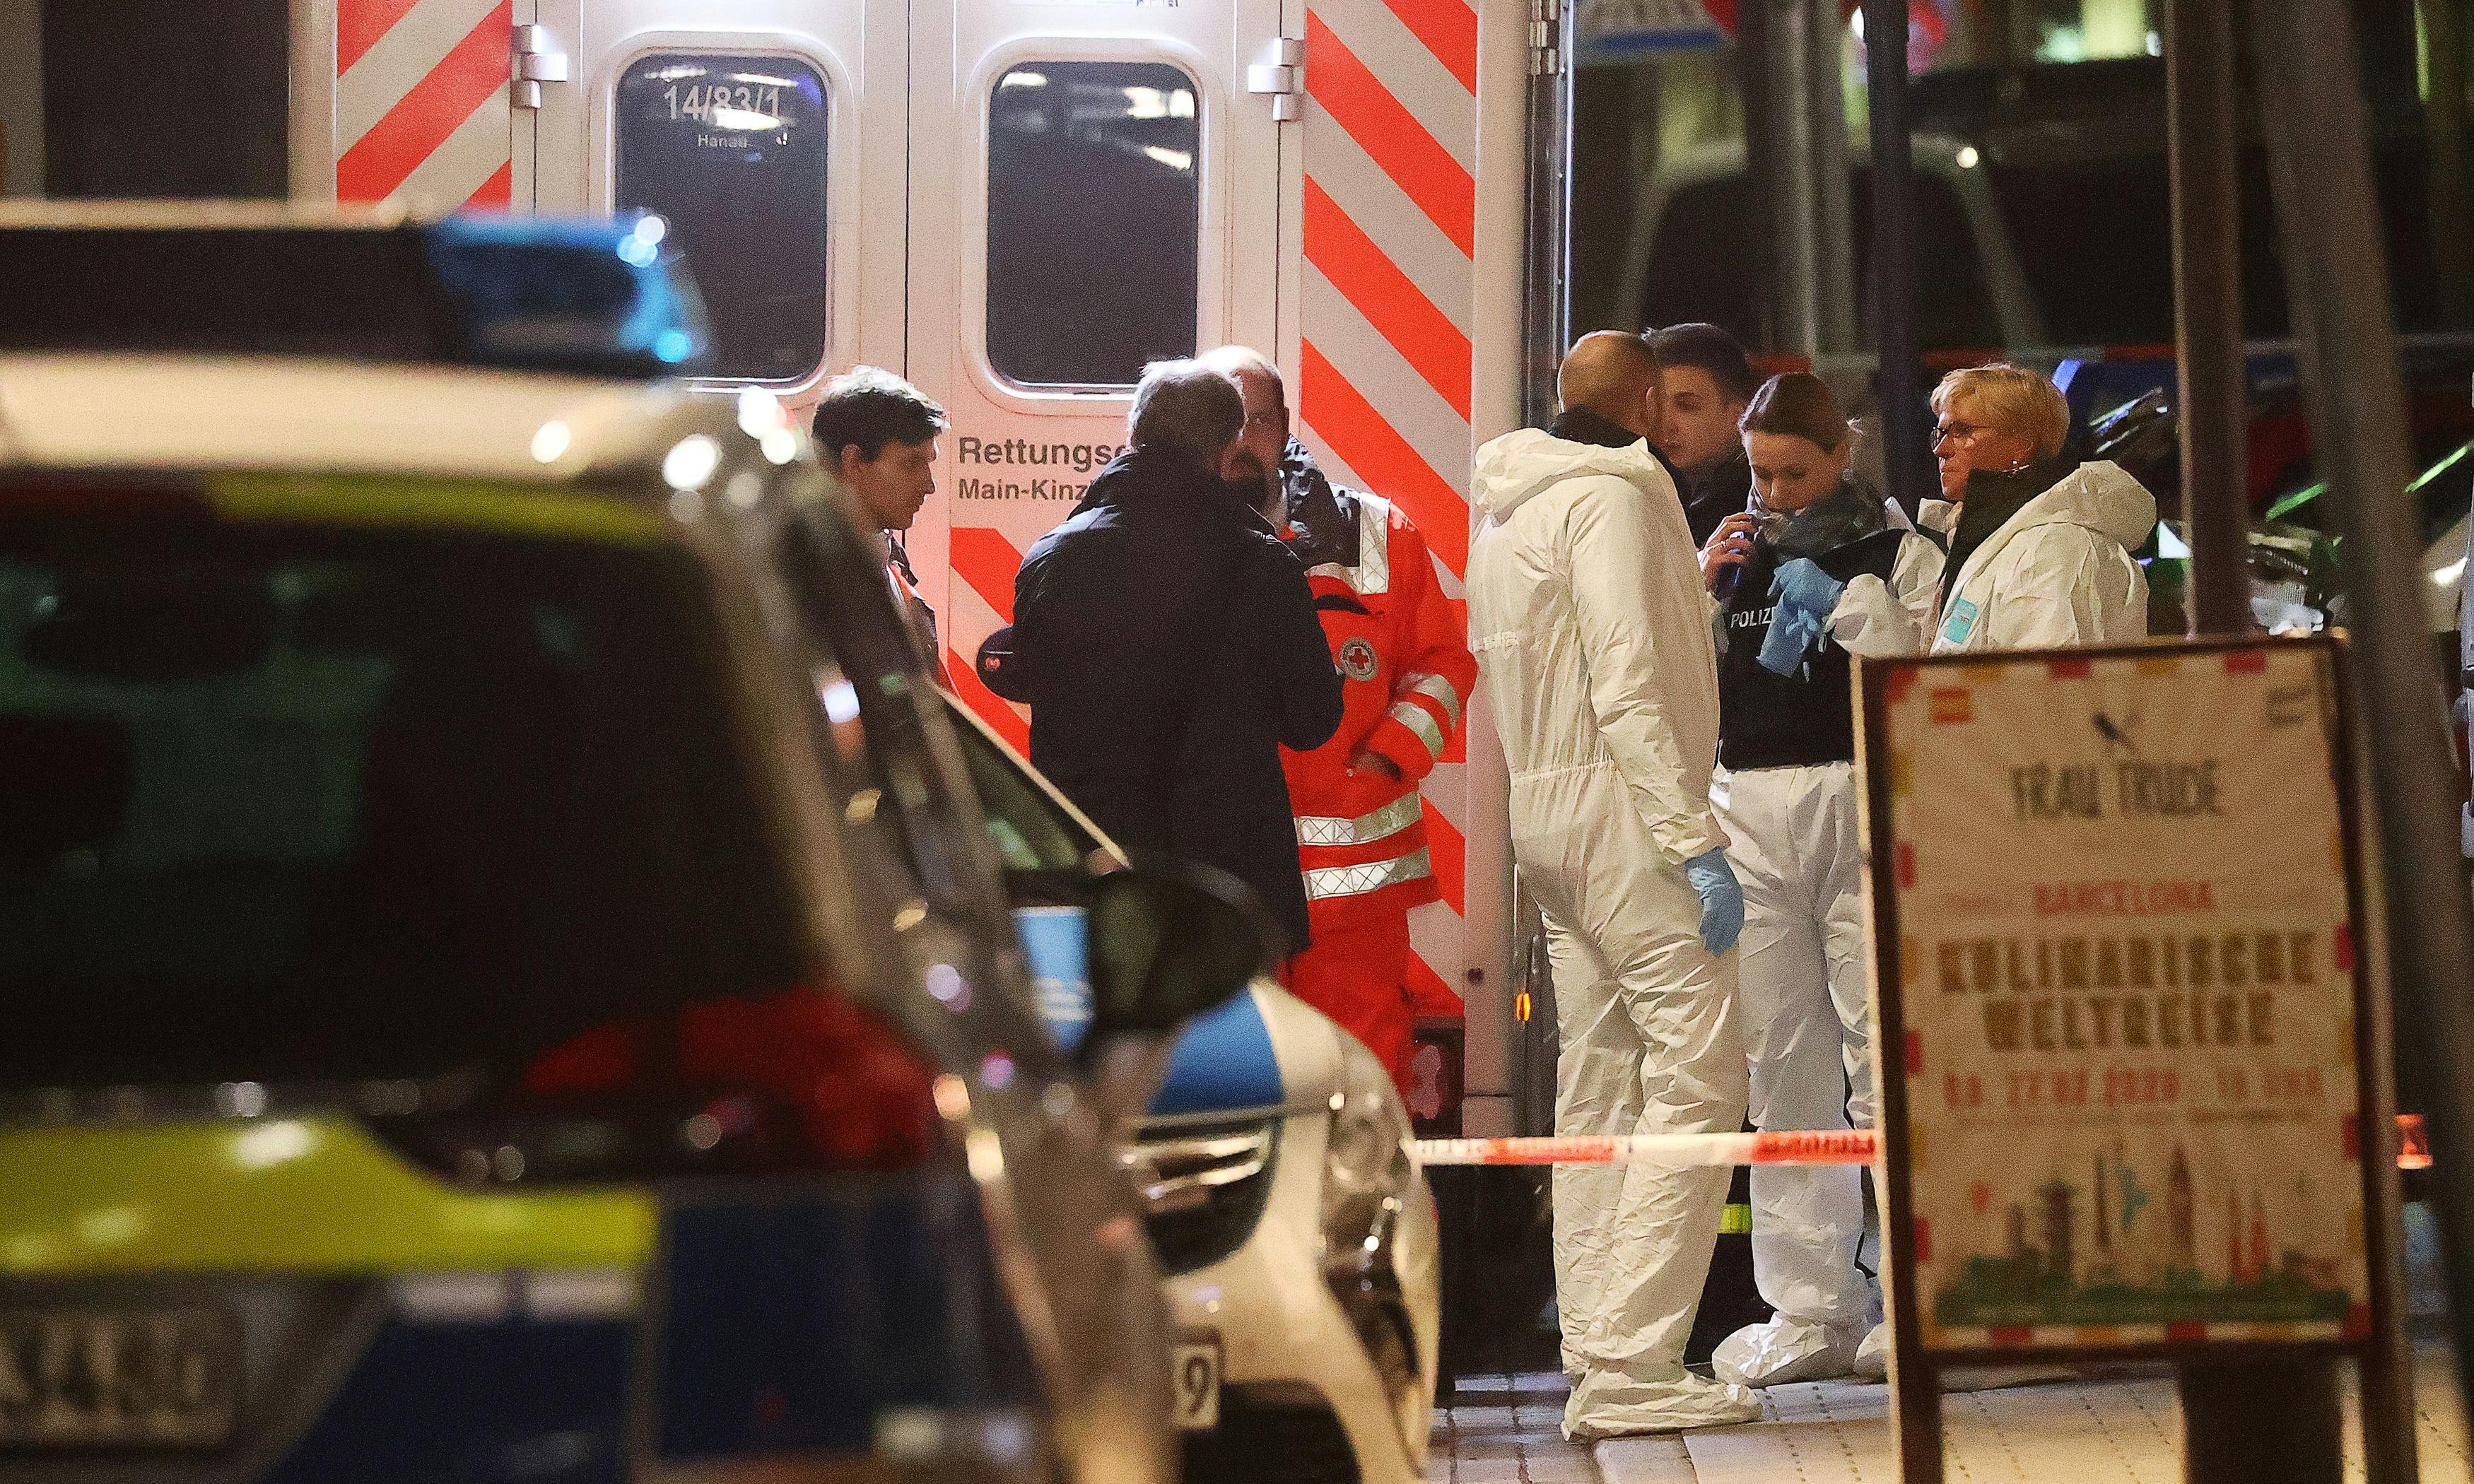 Hanau shooting: 11 dead after attacks on shisha bars in German town